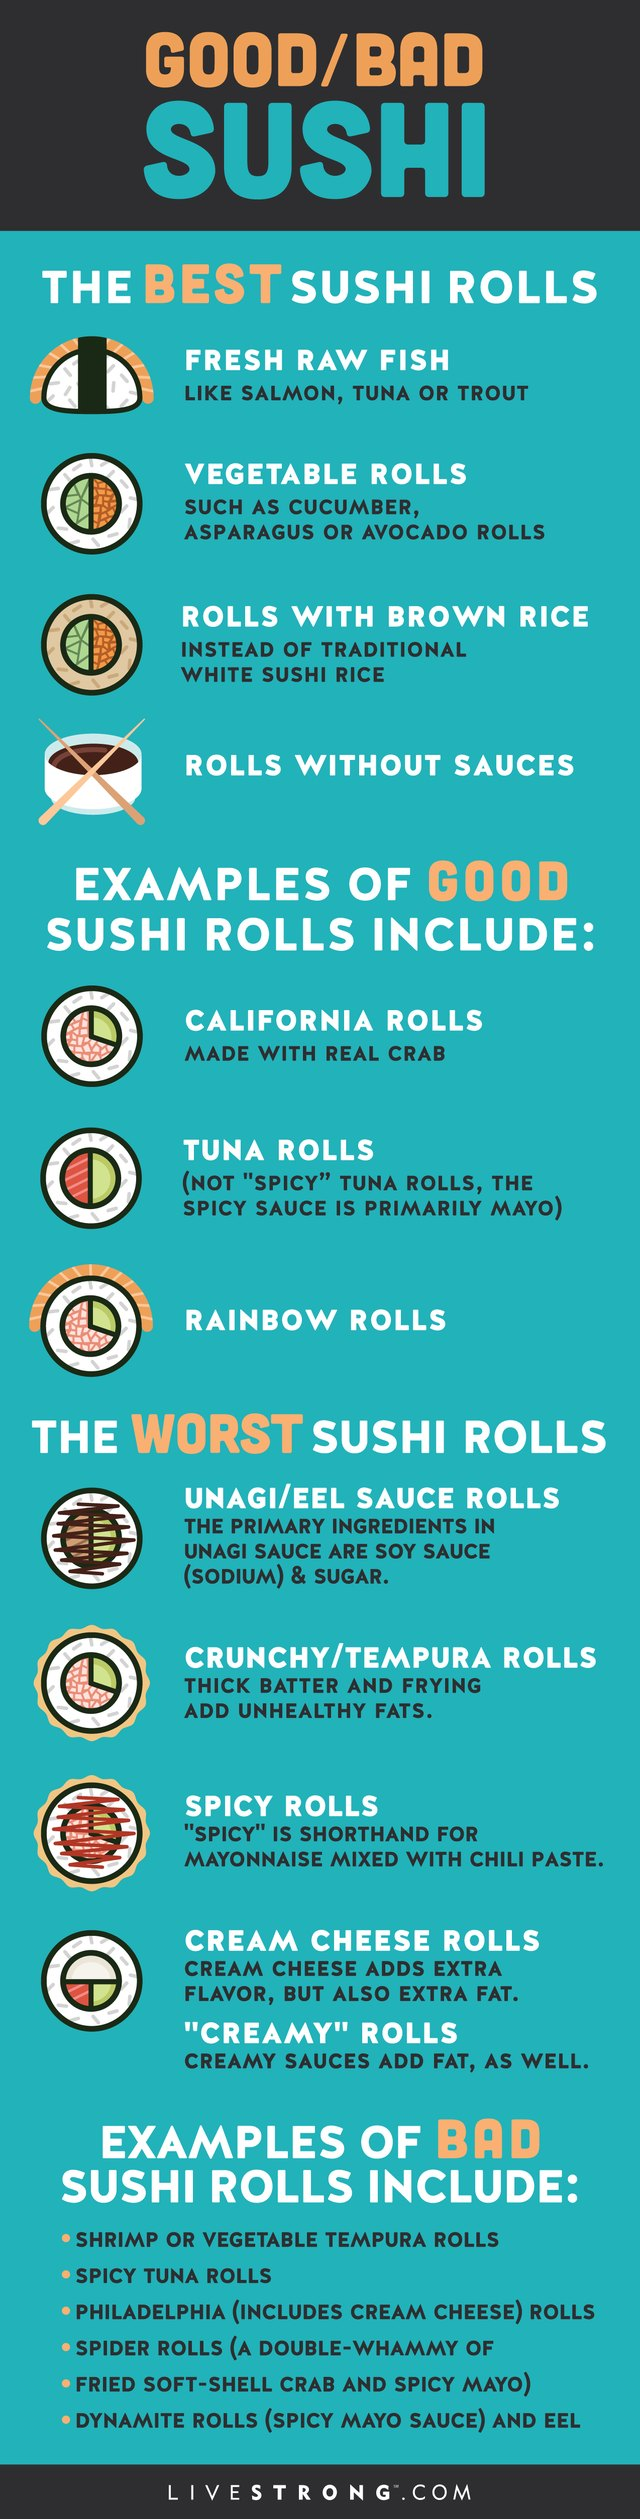 Is Eating Sushi Healthy? Plus the Best & Worst Sushi to Order